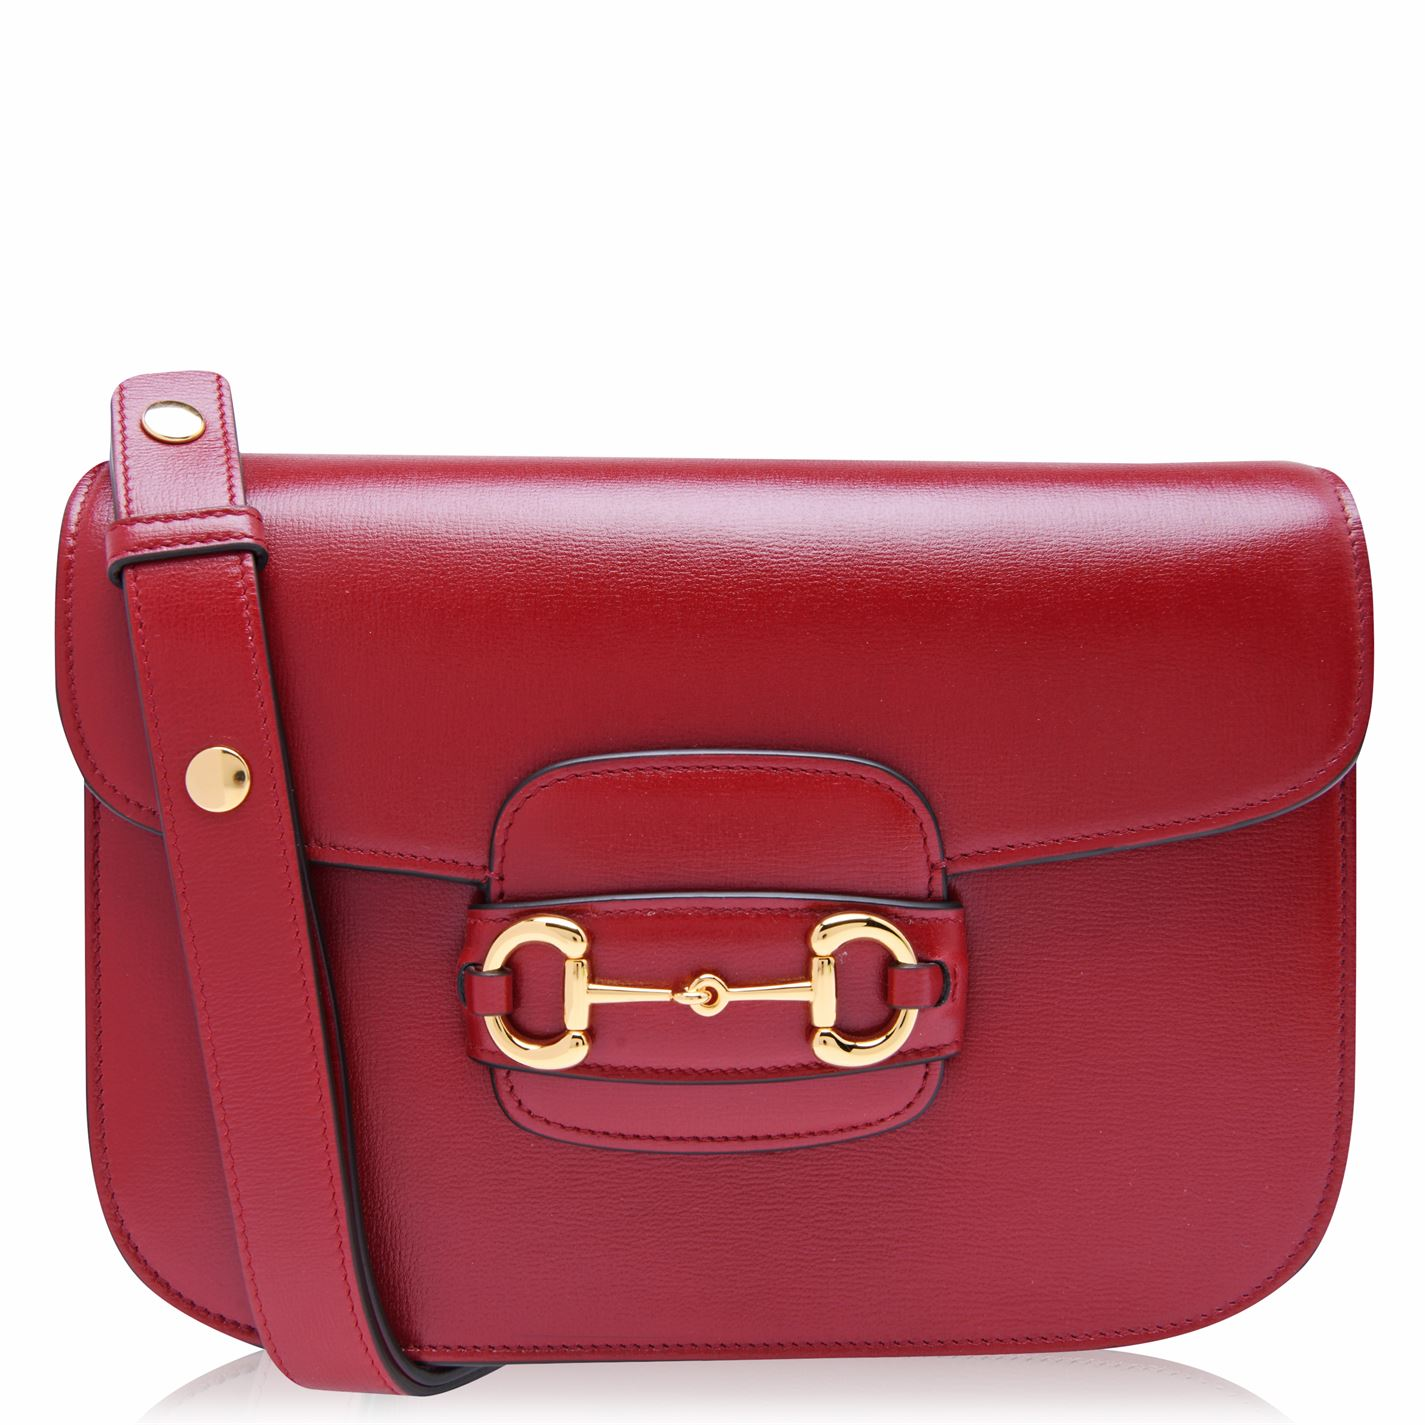 Gucci 1955 horsebit in red leather